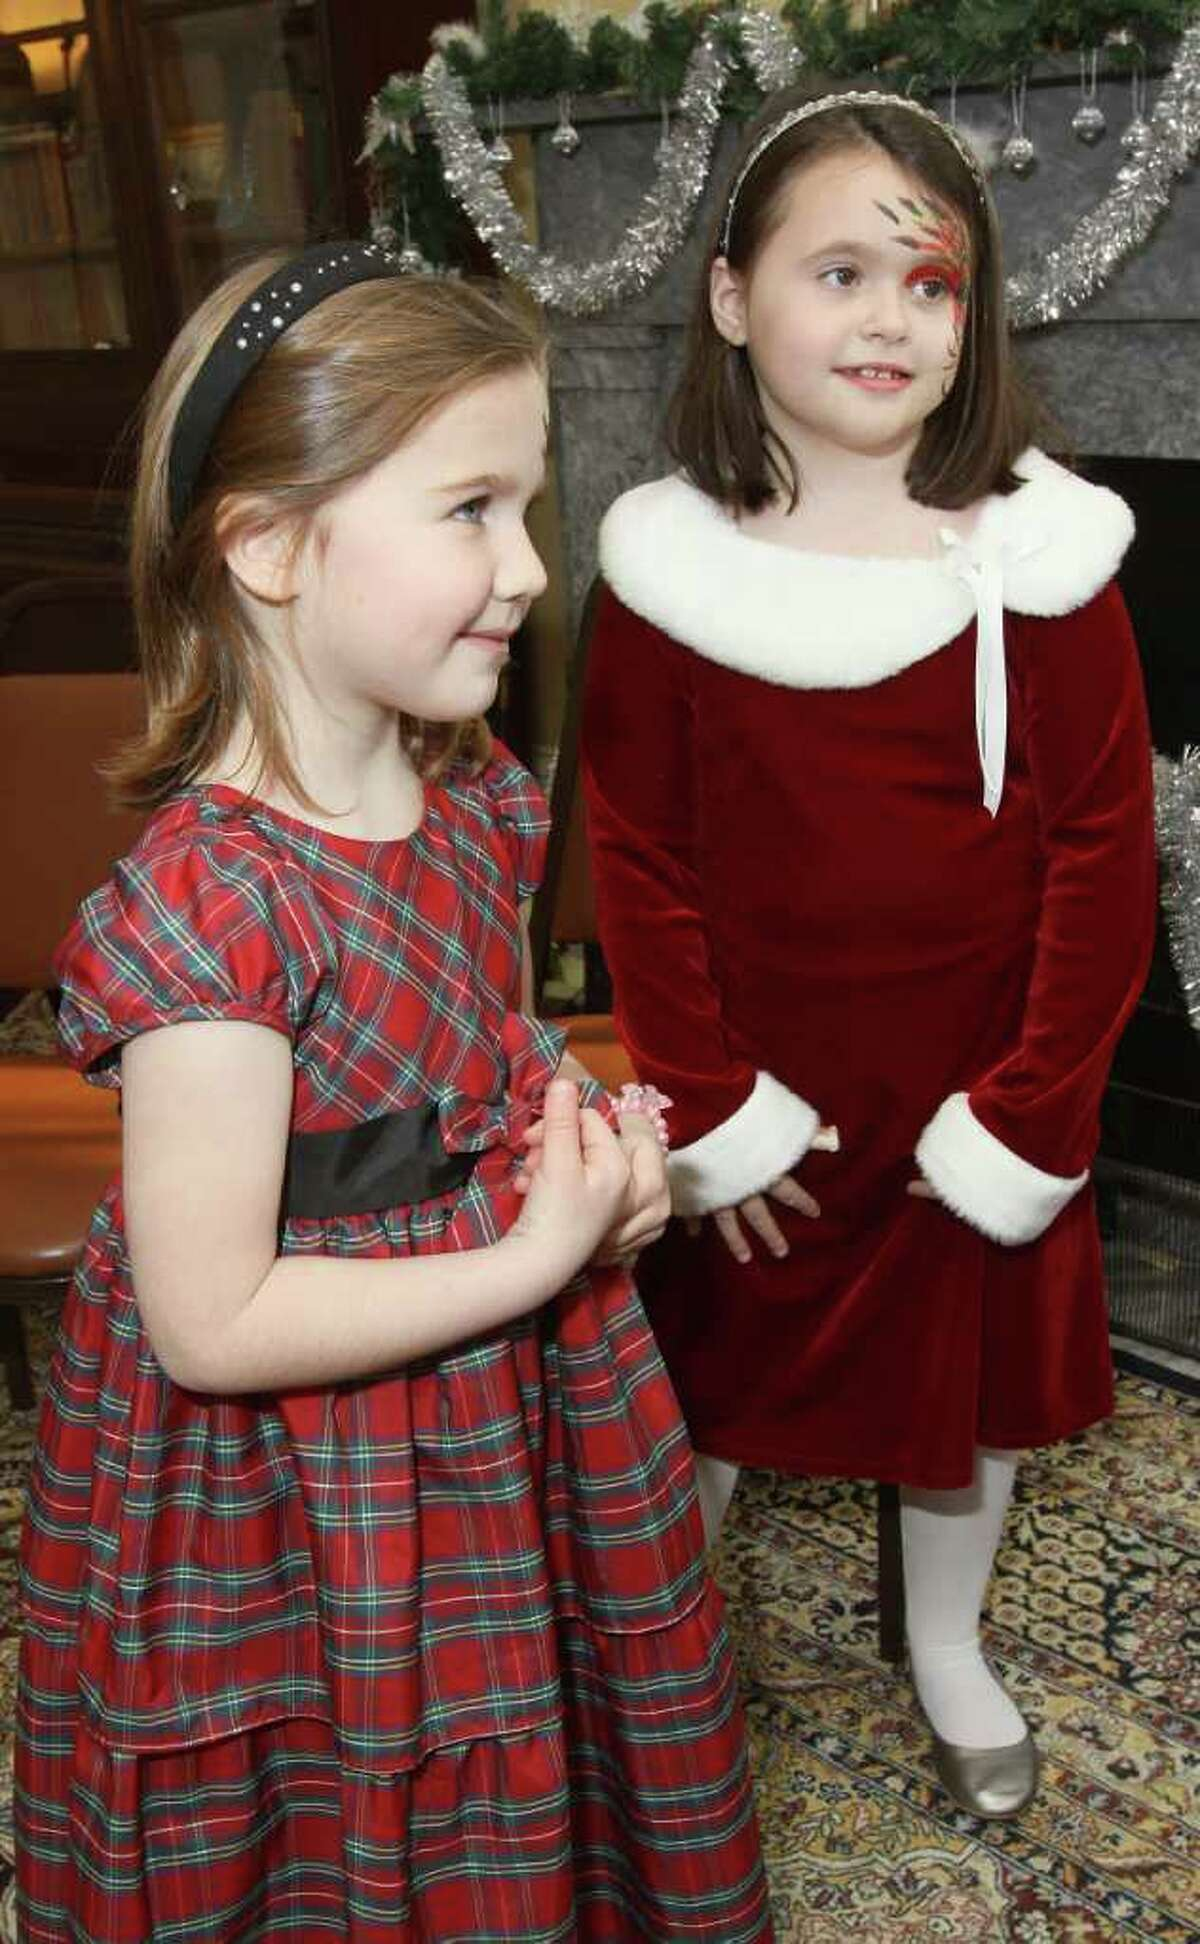 Ashley Pittman, left, and Kara Foley wait patiently to talk to Santa. (Joe Putrock / Special to the Times Union)